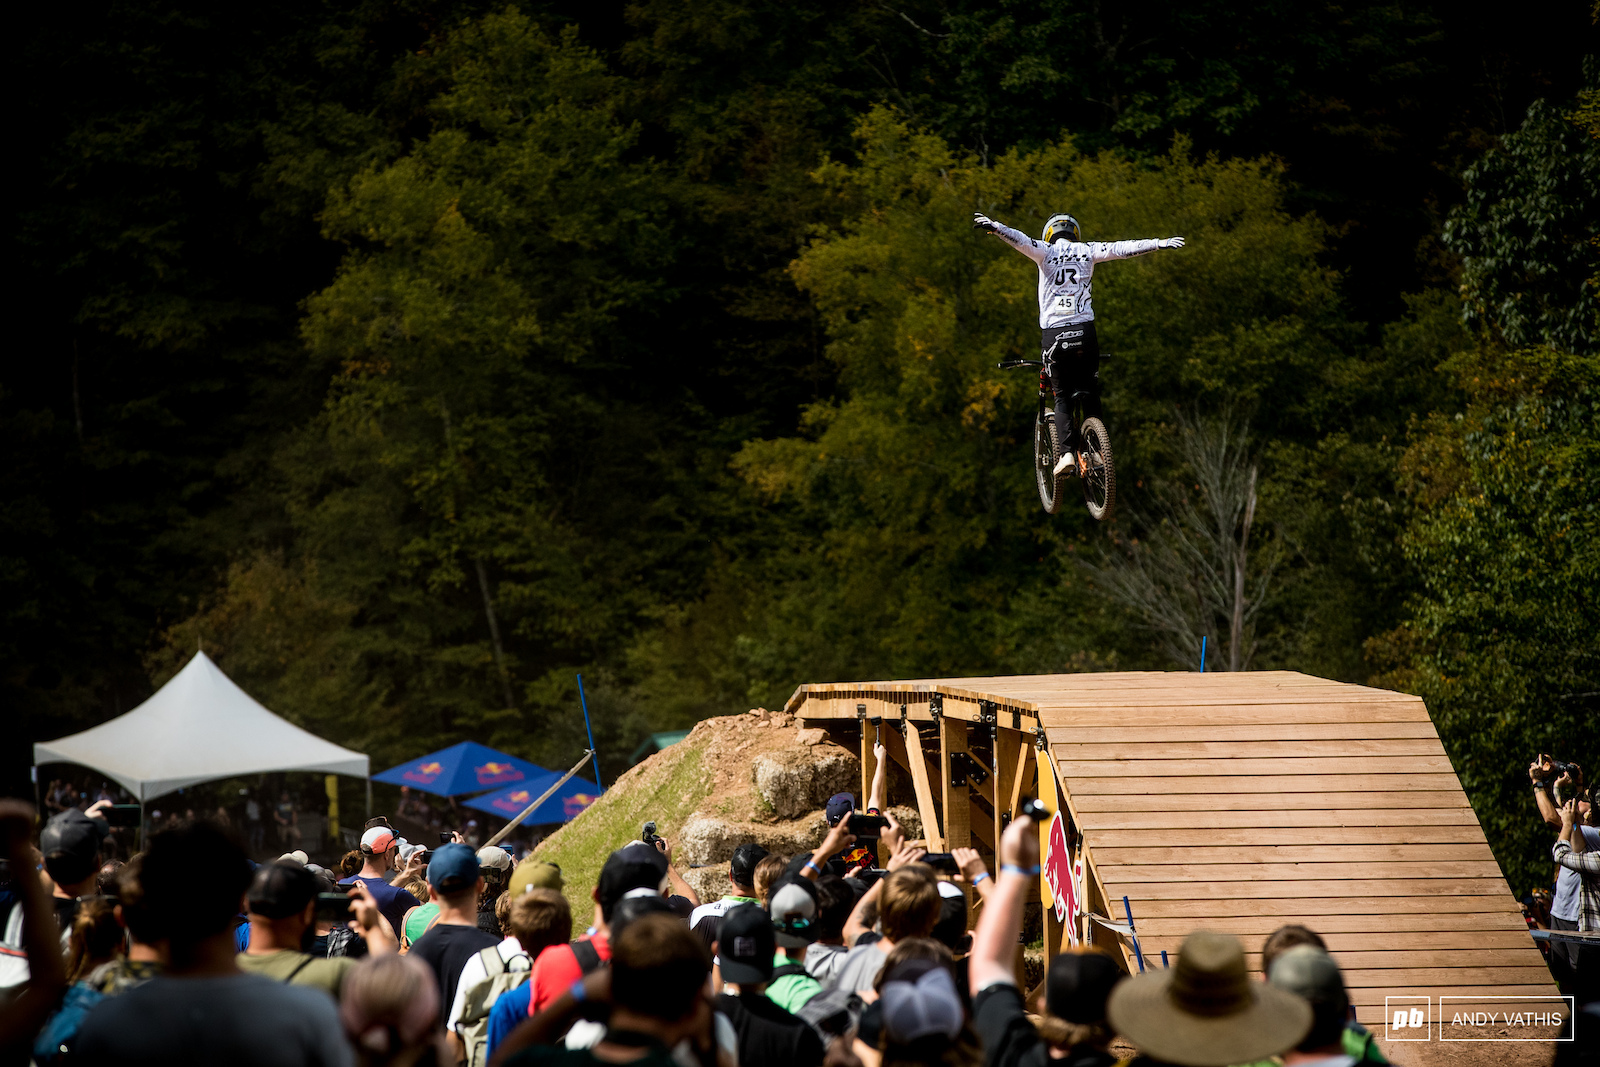 A fitting farewell no-hander for the legend Sick Mick.